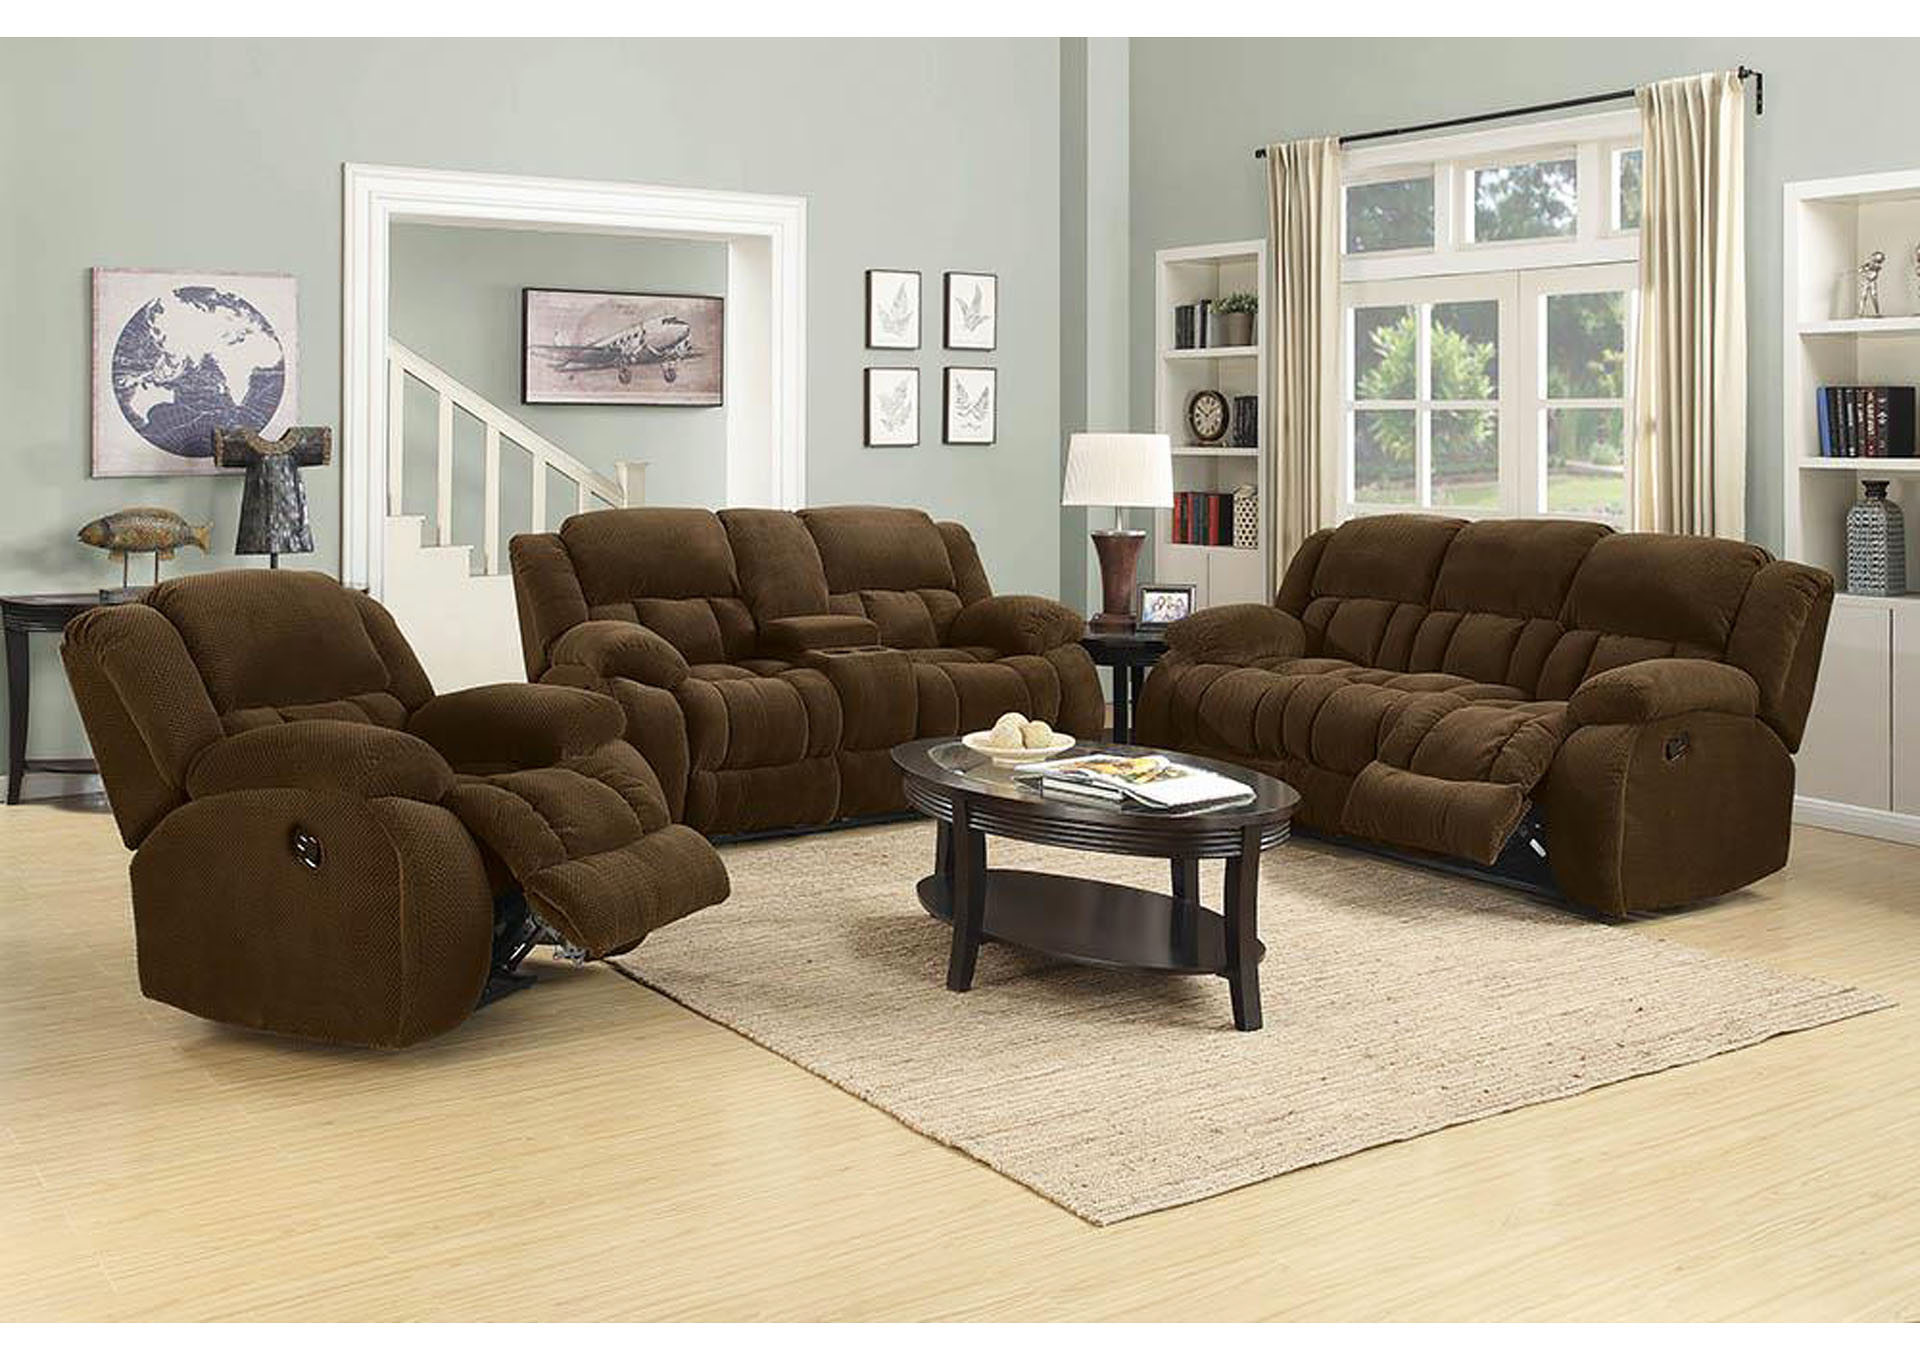 Weissman Brown Reclining Sofa,Coaster Furniture